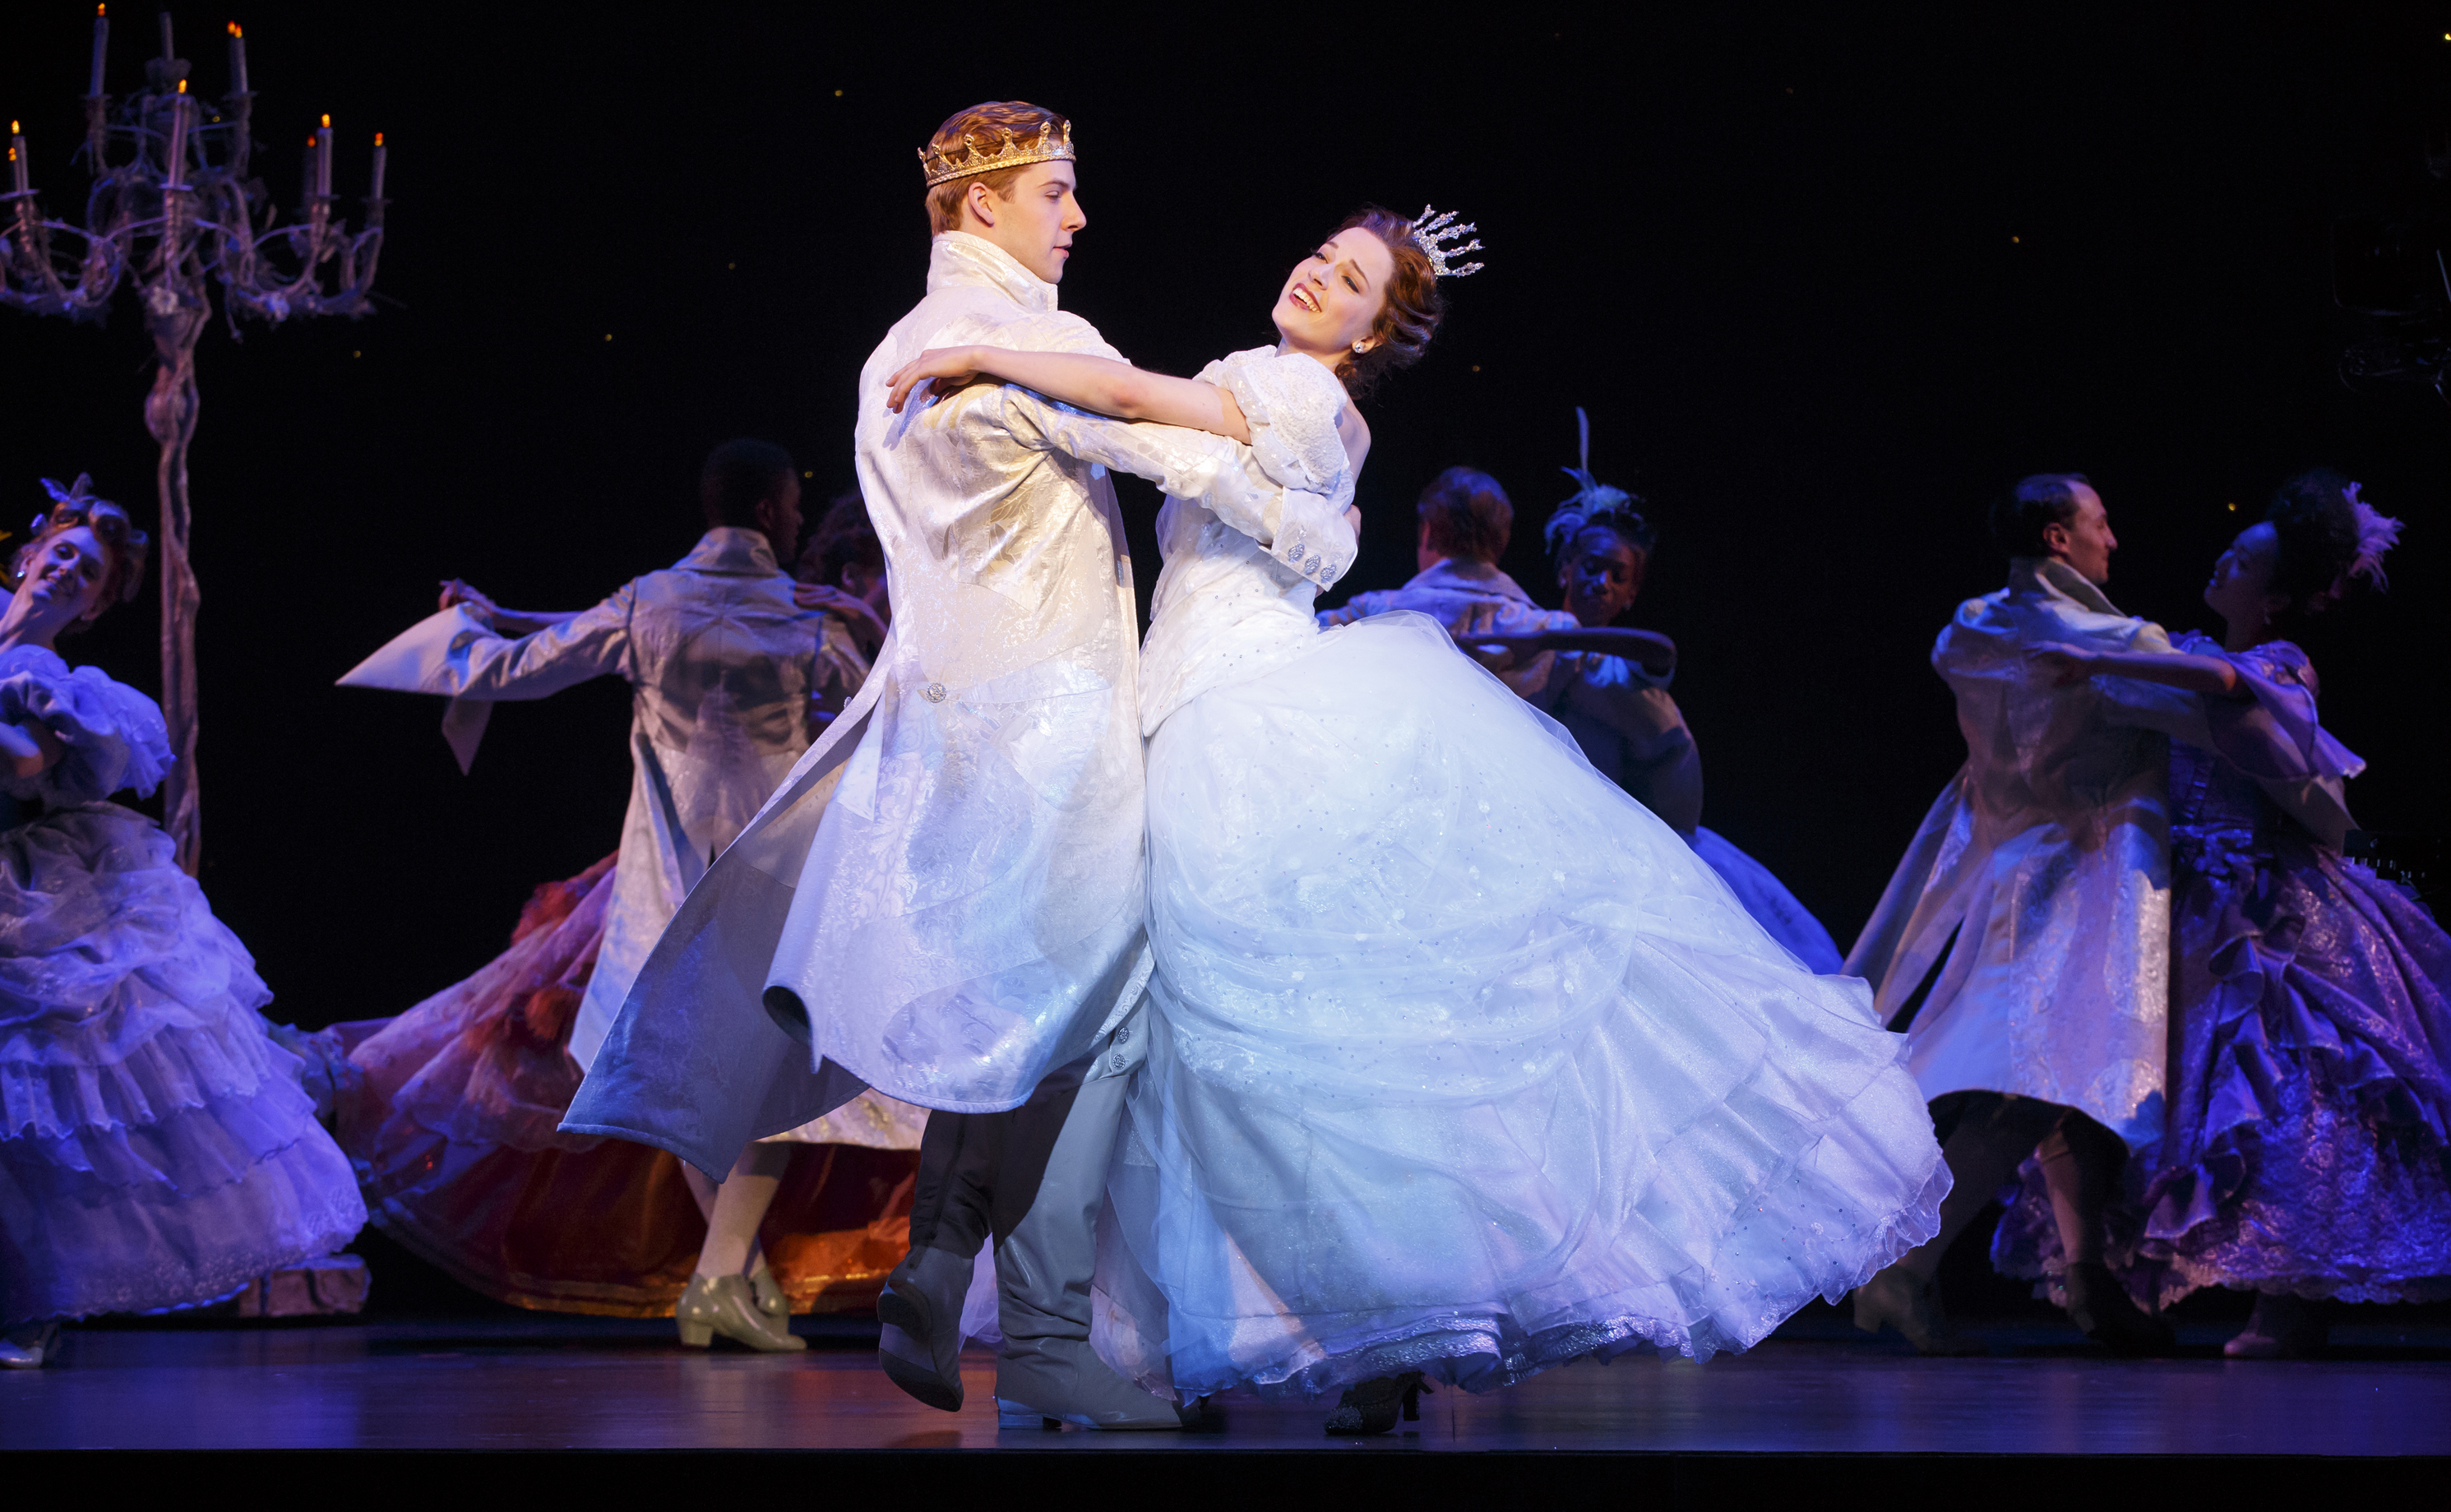 Dallas Summer Musicals kicks off season with the magical Cinderella